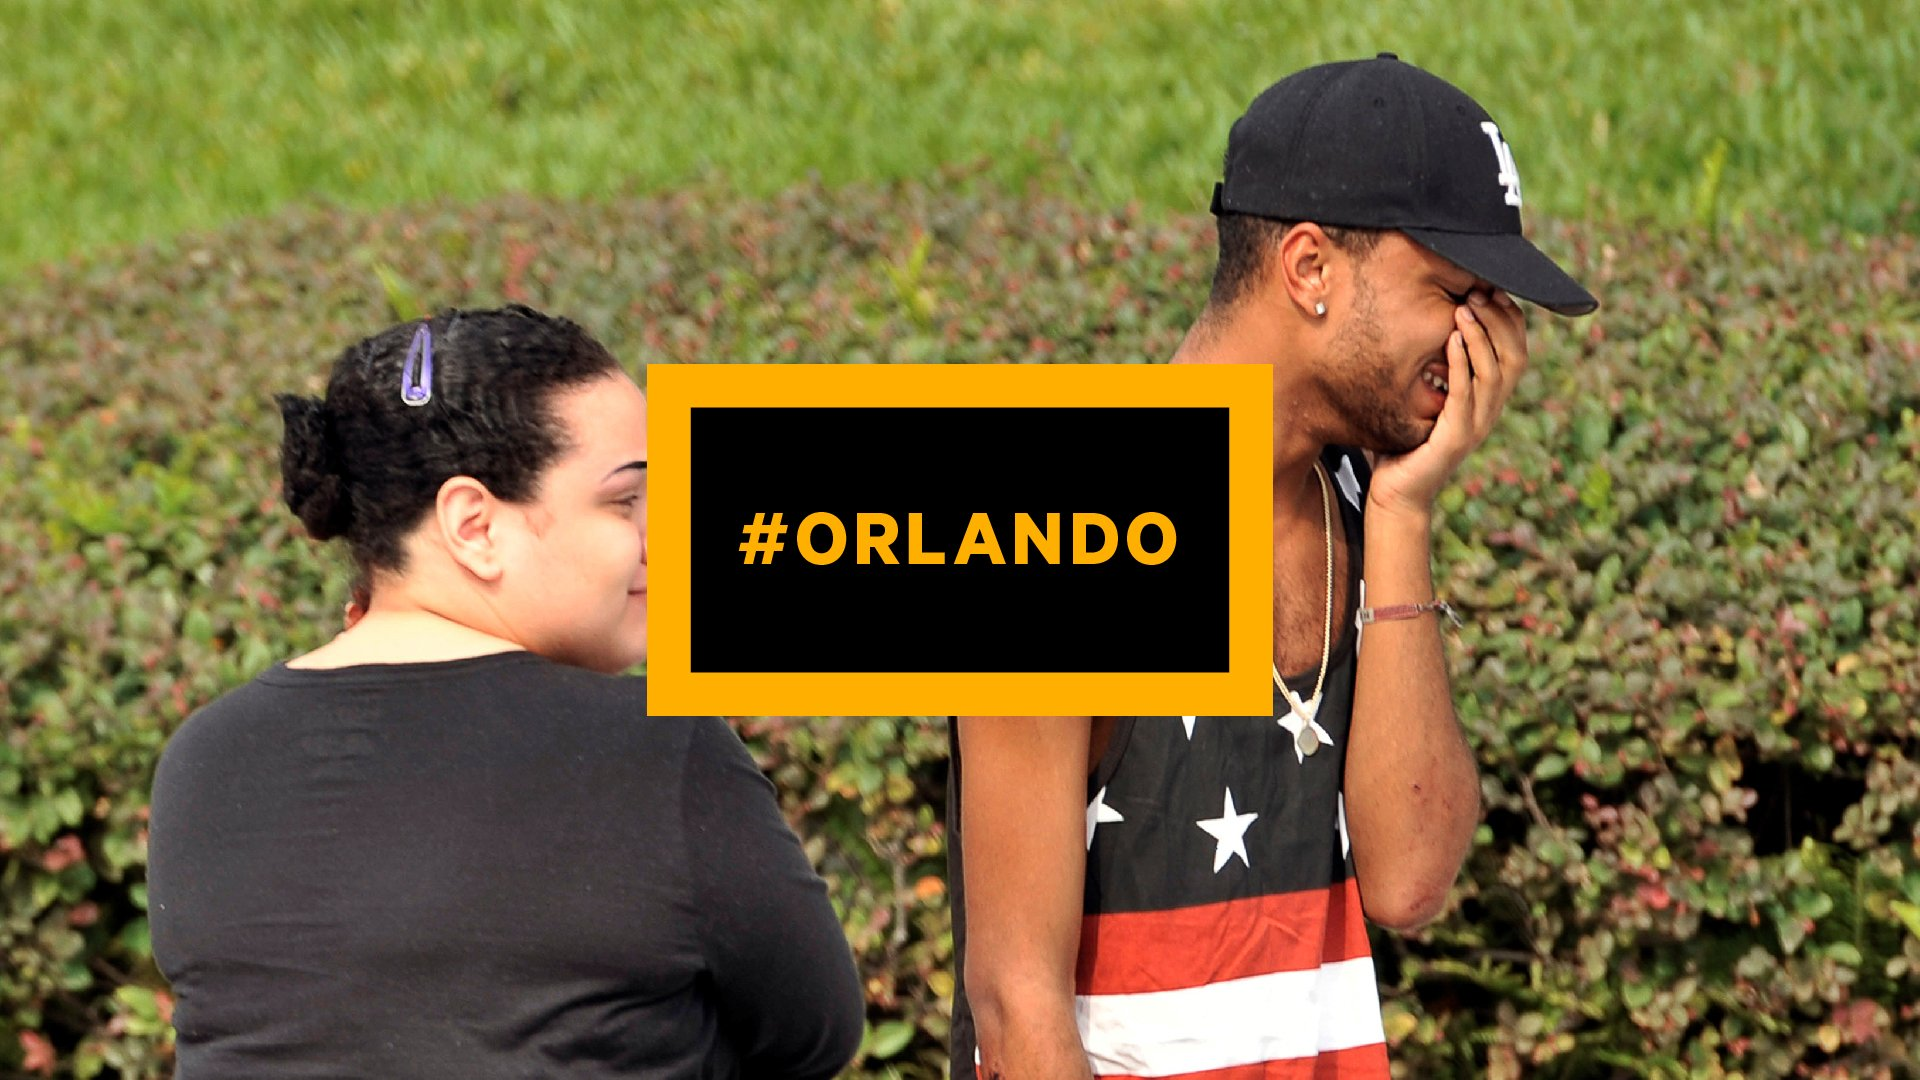 Now This logo #orlando